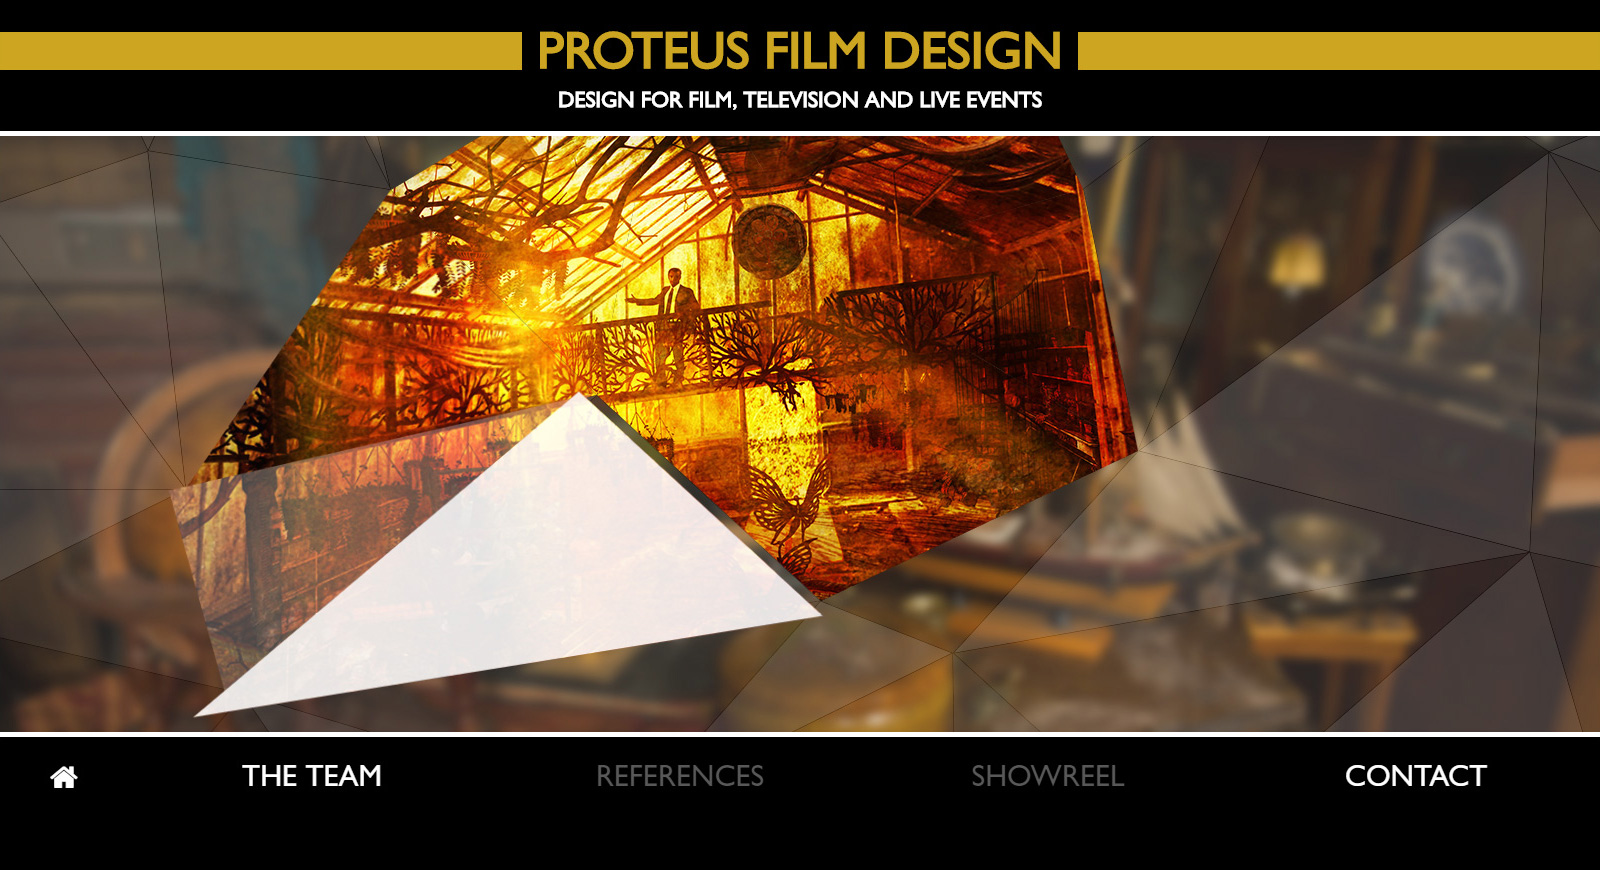 Proteus Film Design team weboldala 1